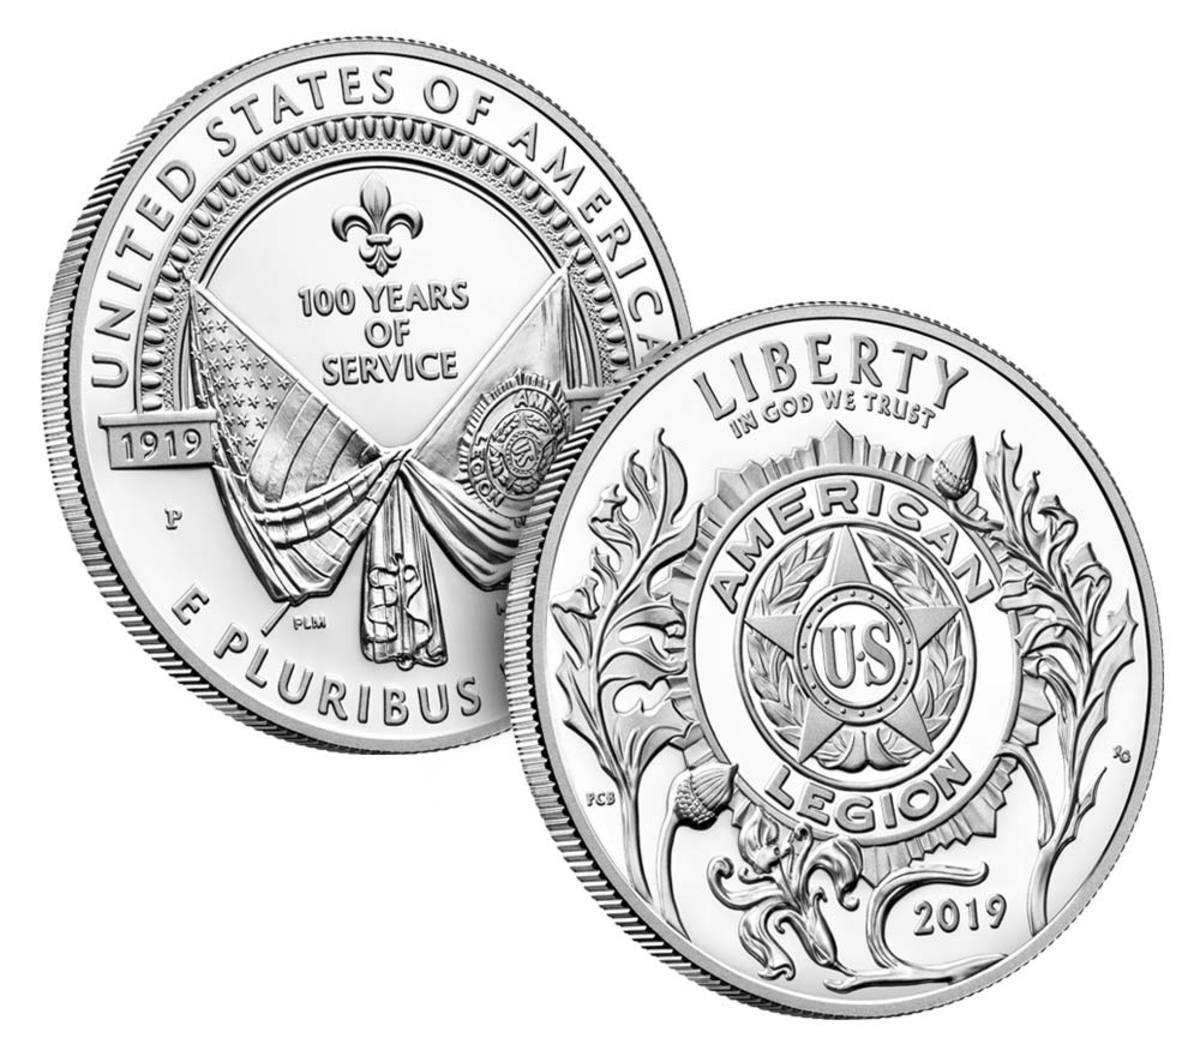 The American Legion 100th Anniversary Proof Silver Dollar included in this set is also available individually for $59.95.